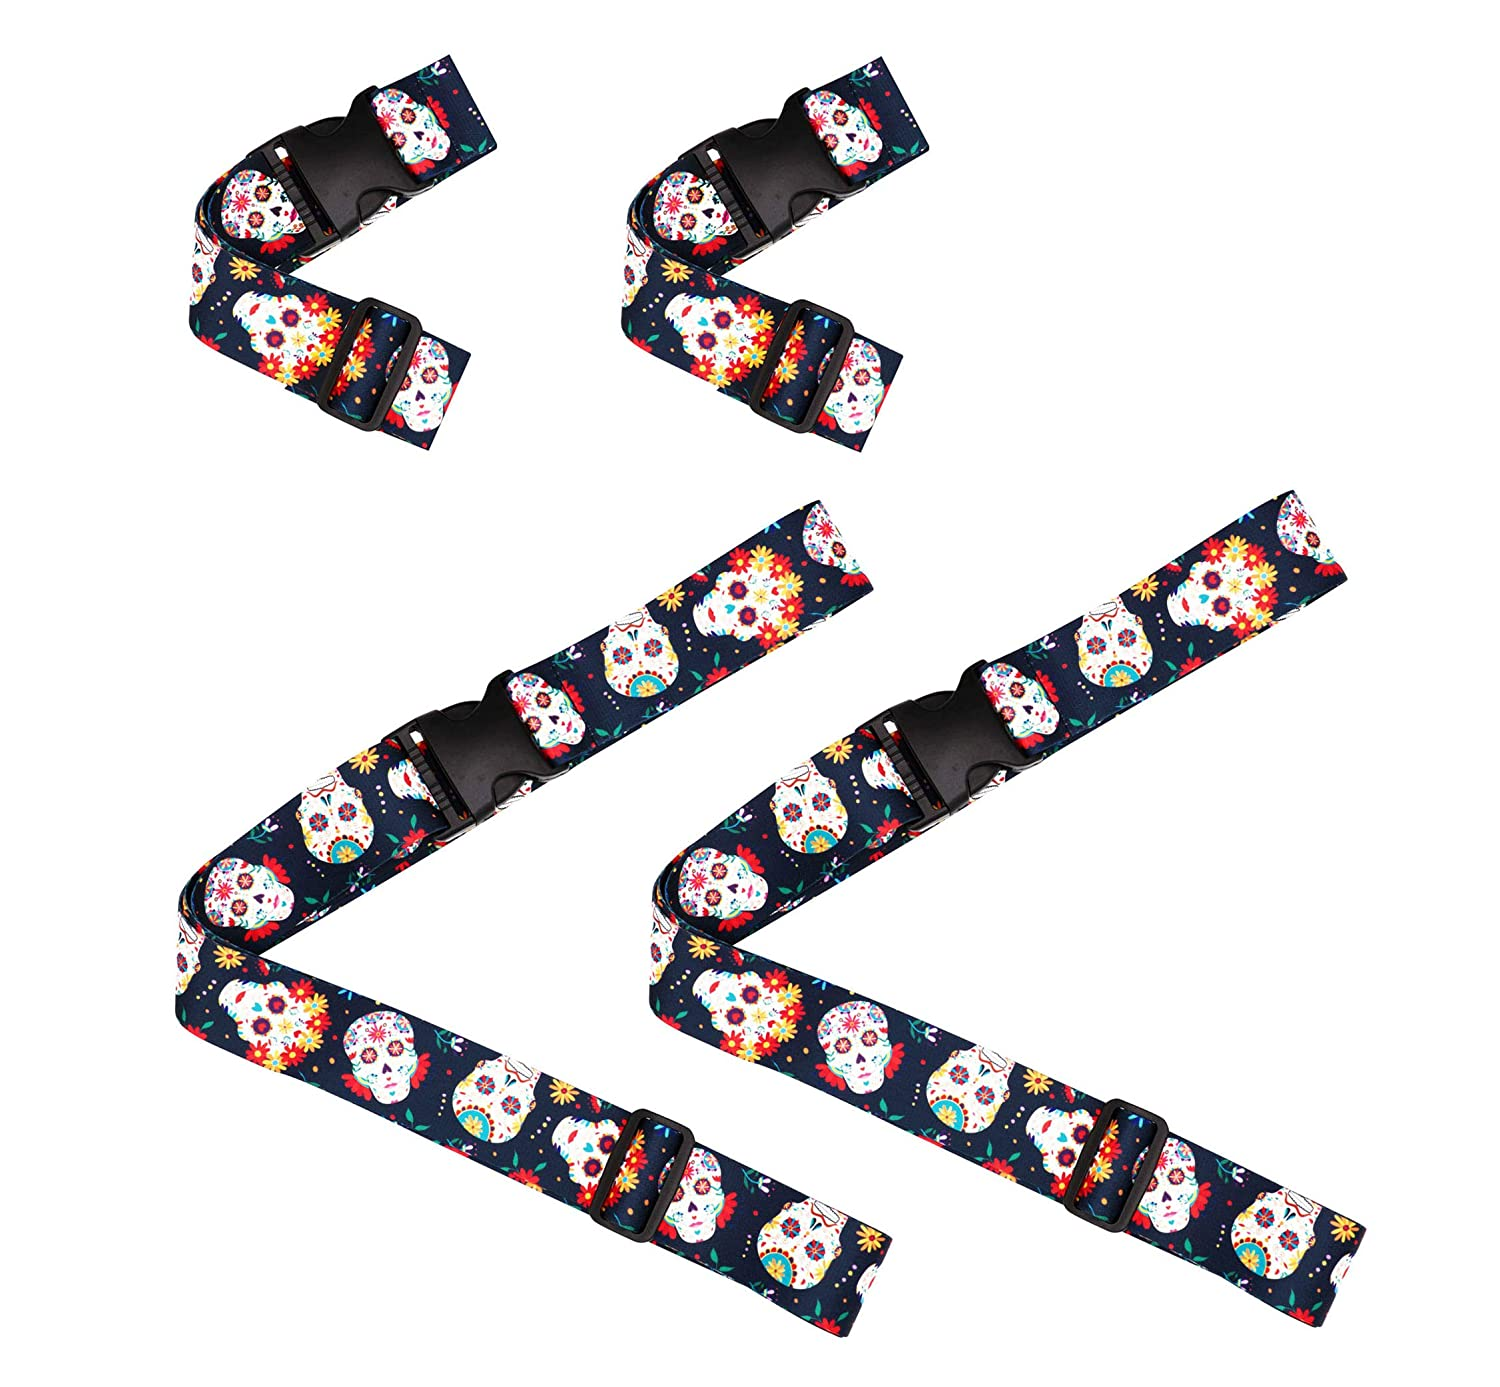 5335d6c16a1e Sugar Skull Day of the Dead Travel Luggage Strap Suitcase Security Belt.  Heavy Duty & Adjustable. Must Have Travel Accessories. TSA Compliant. 2 ...